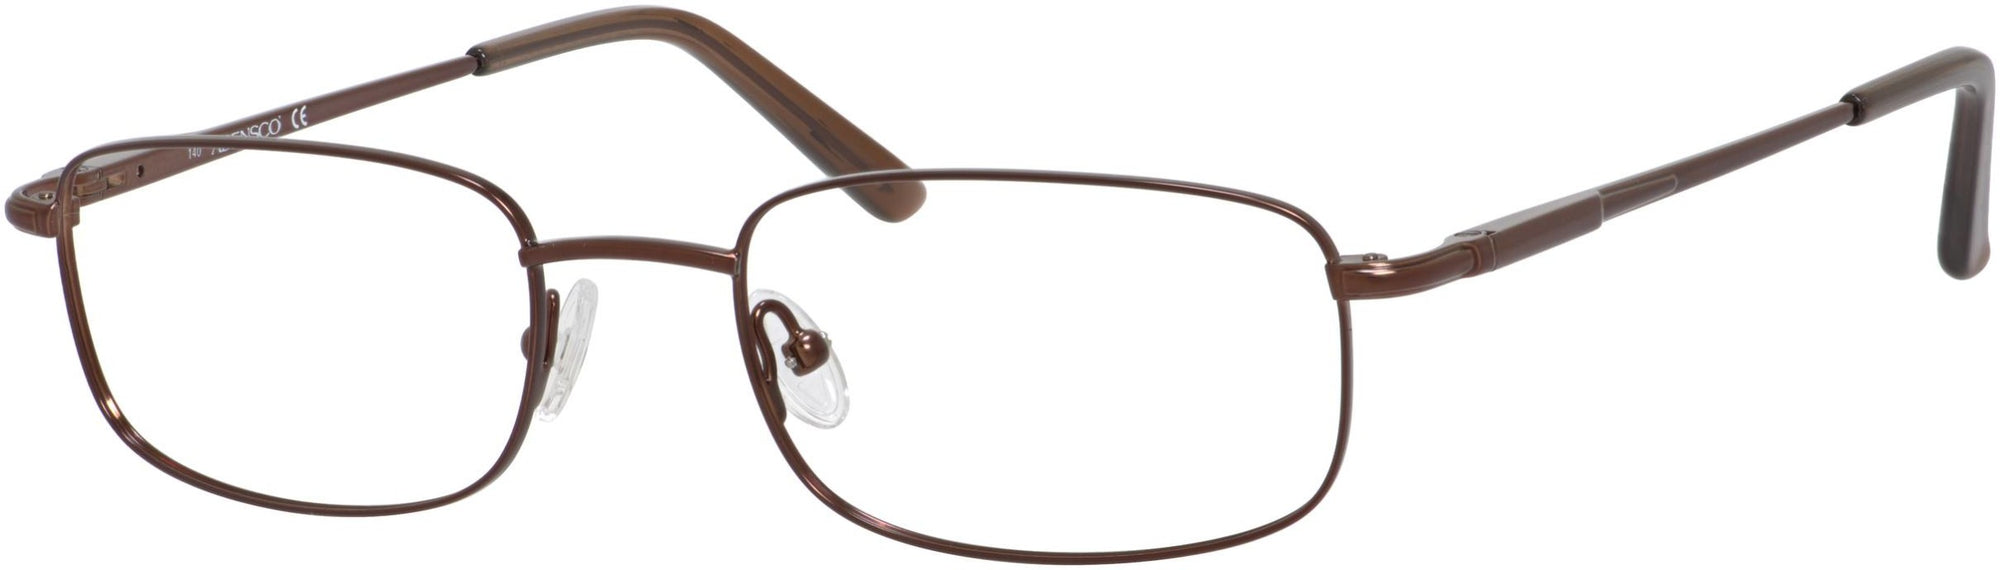 Adensco AD 108 Rectangular Eyeglasses 01D1-01D1  Brown (00 Demo Lens)